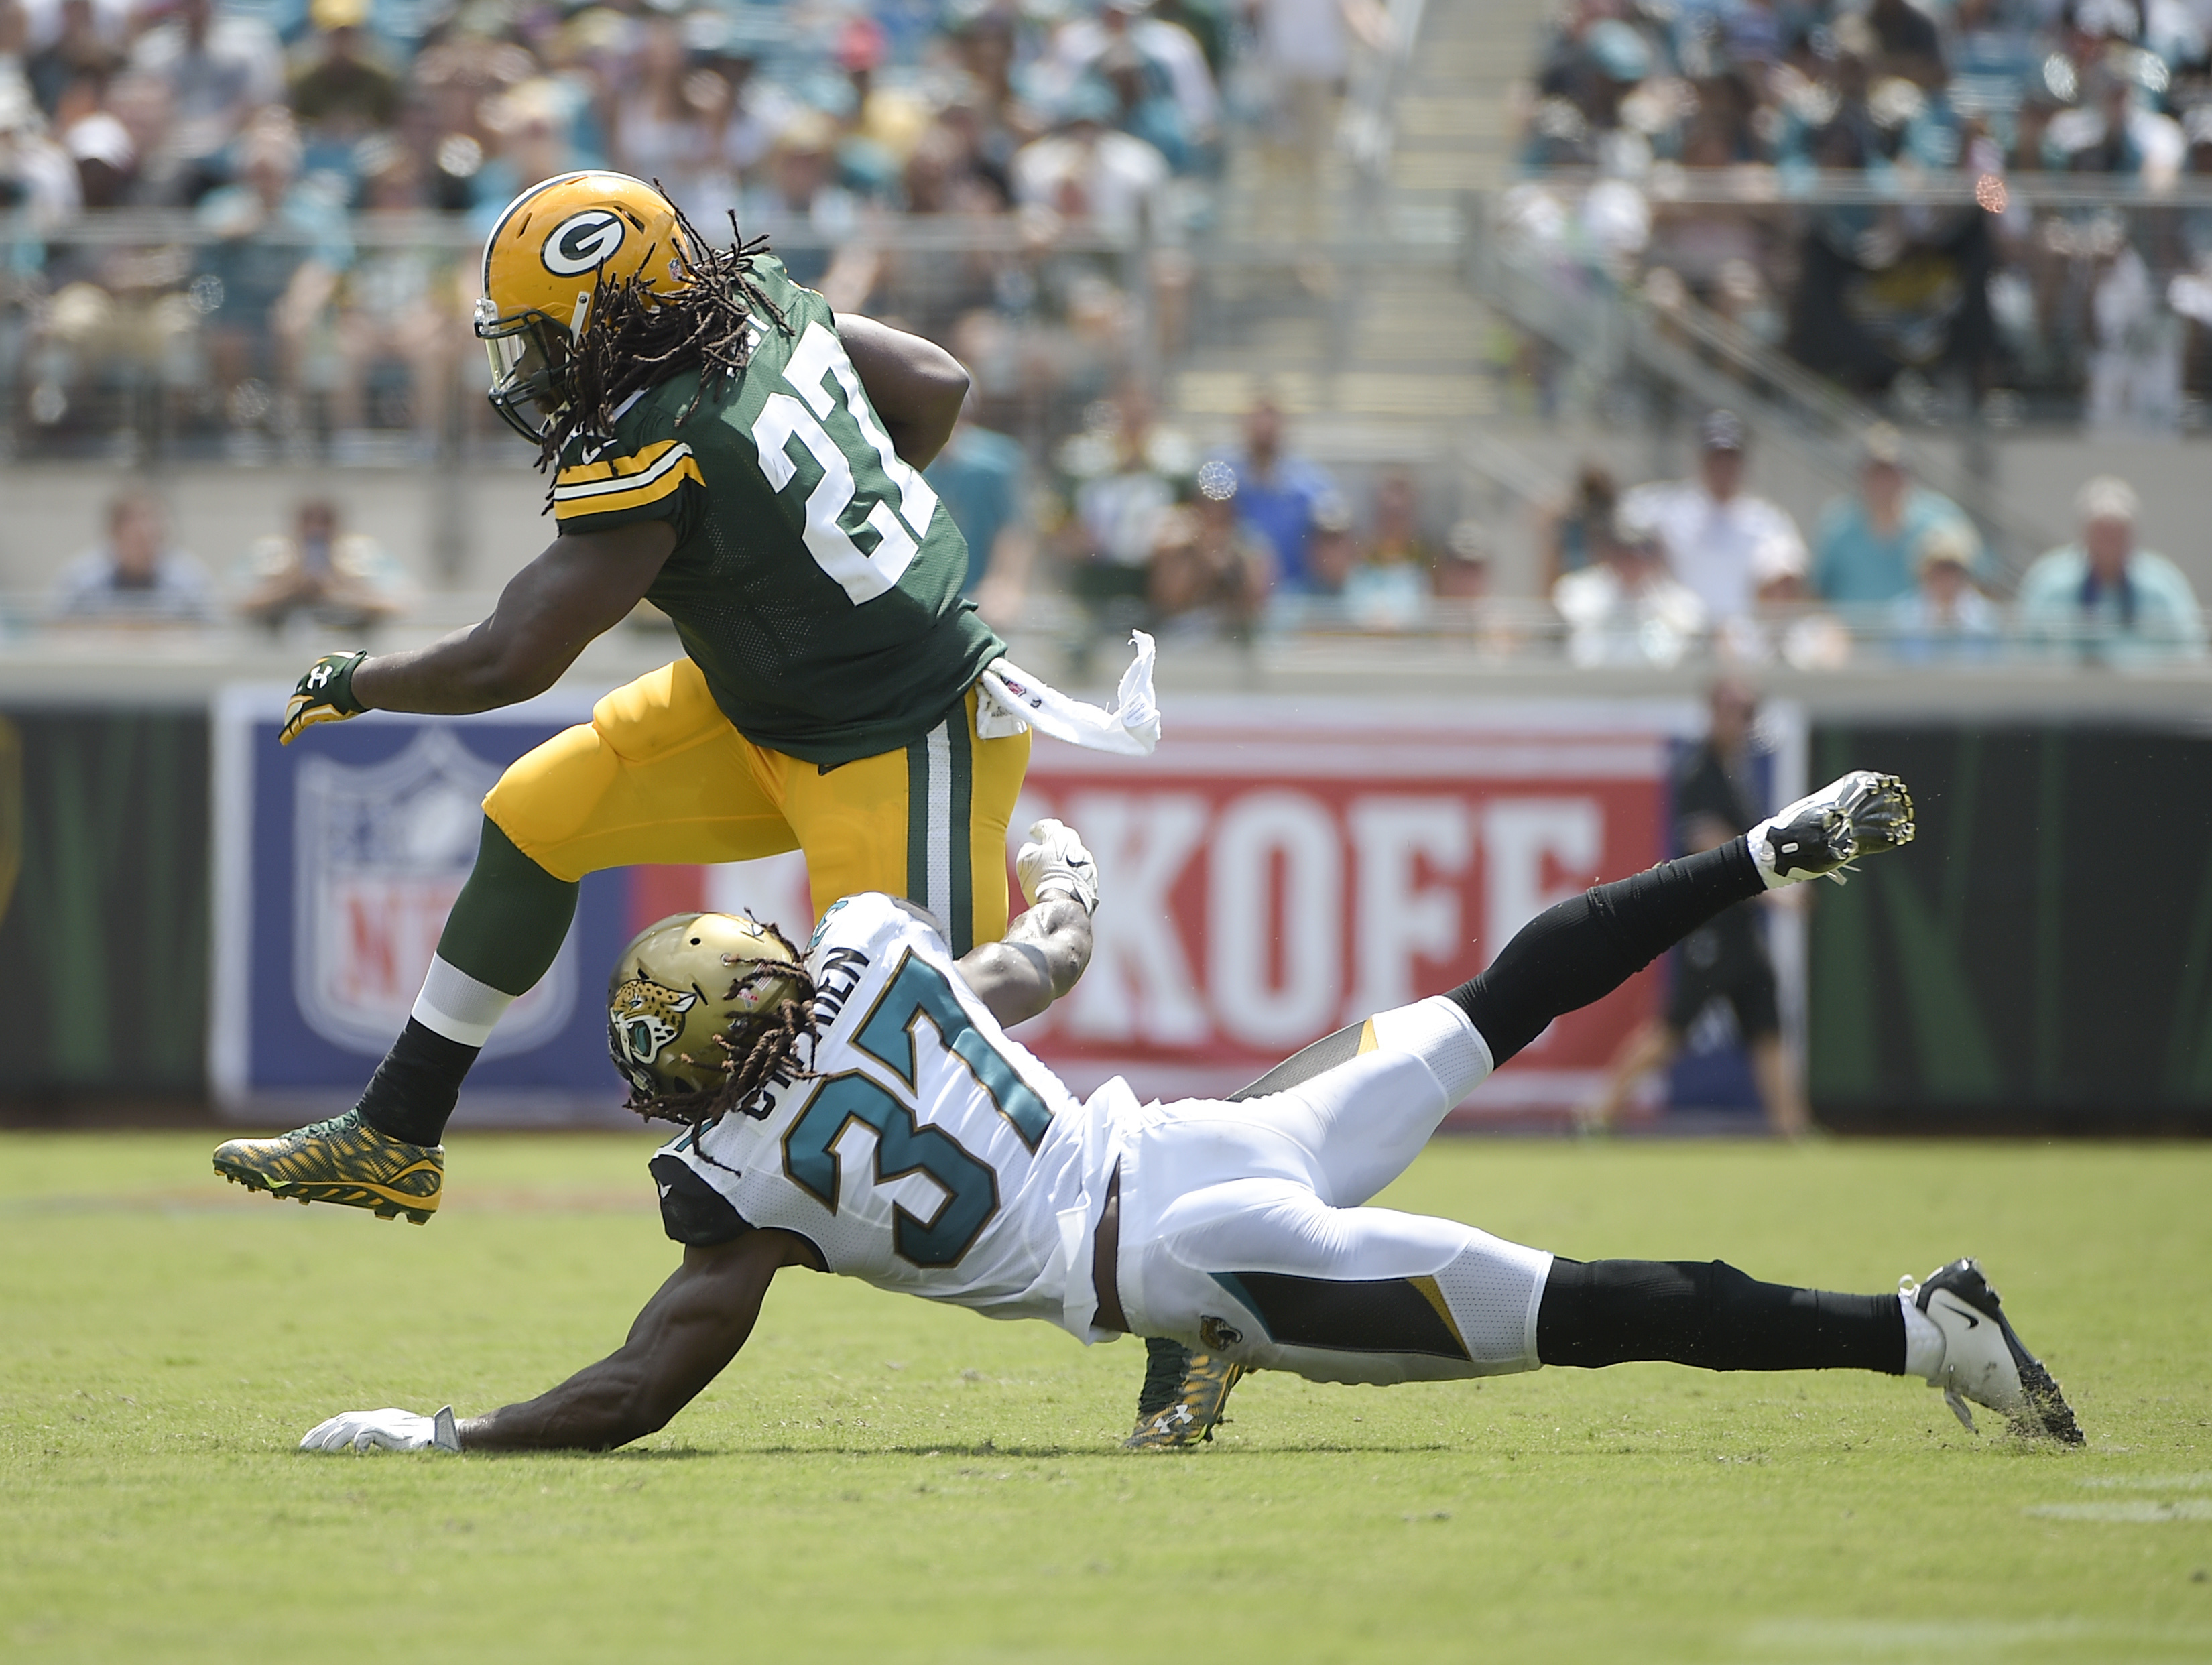 Green Bay Packers running back Eddie Lacy (27) makes a move to get past Jacksonville Jaguars strong safety Johnathan Cyprien (37) during the first half of an NFL football game in Jacksonville, Fla., Sunday, Sept. 11, 2016. (AP Photo/Phelan M. Ebenhack)